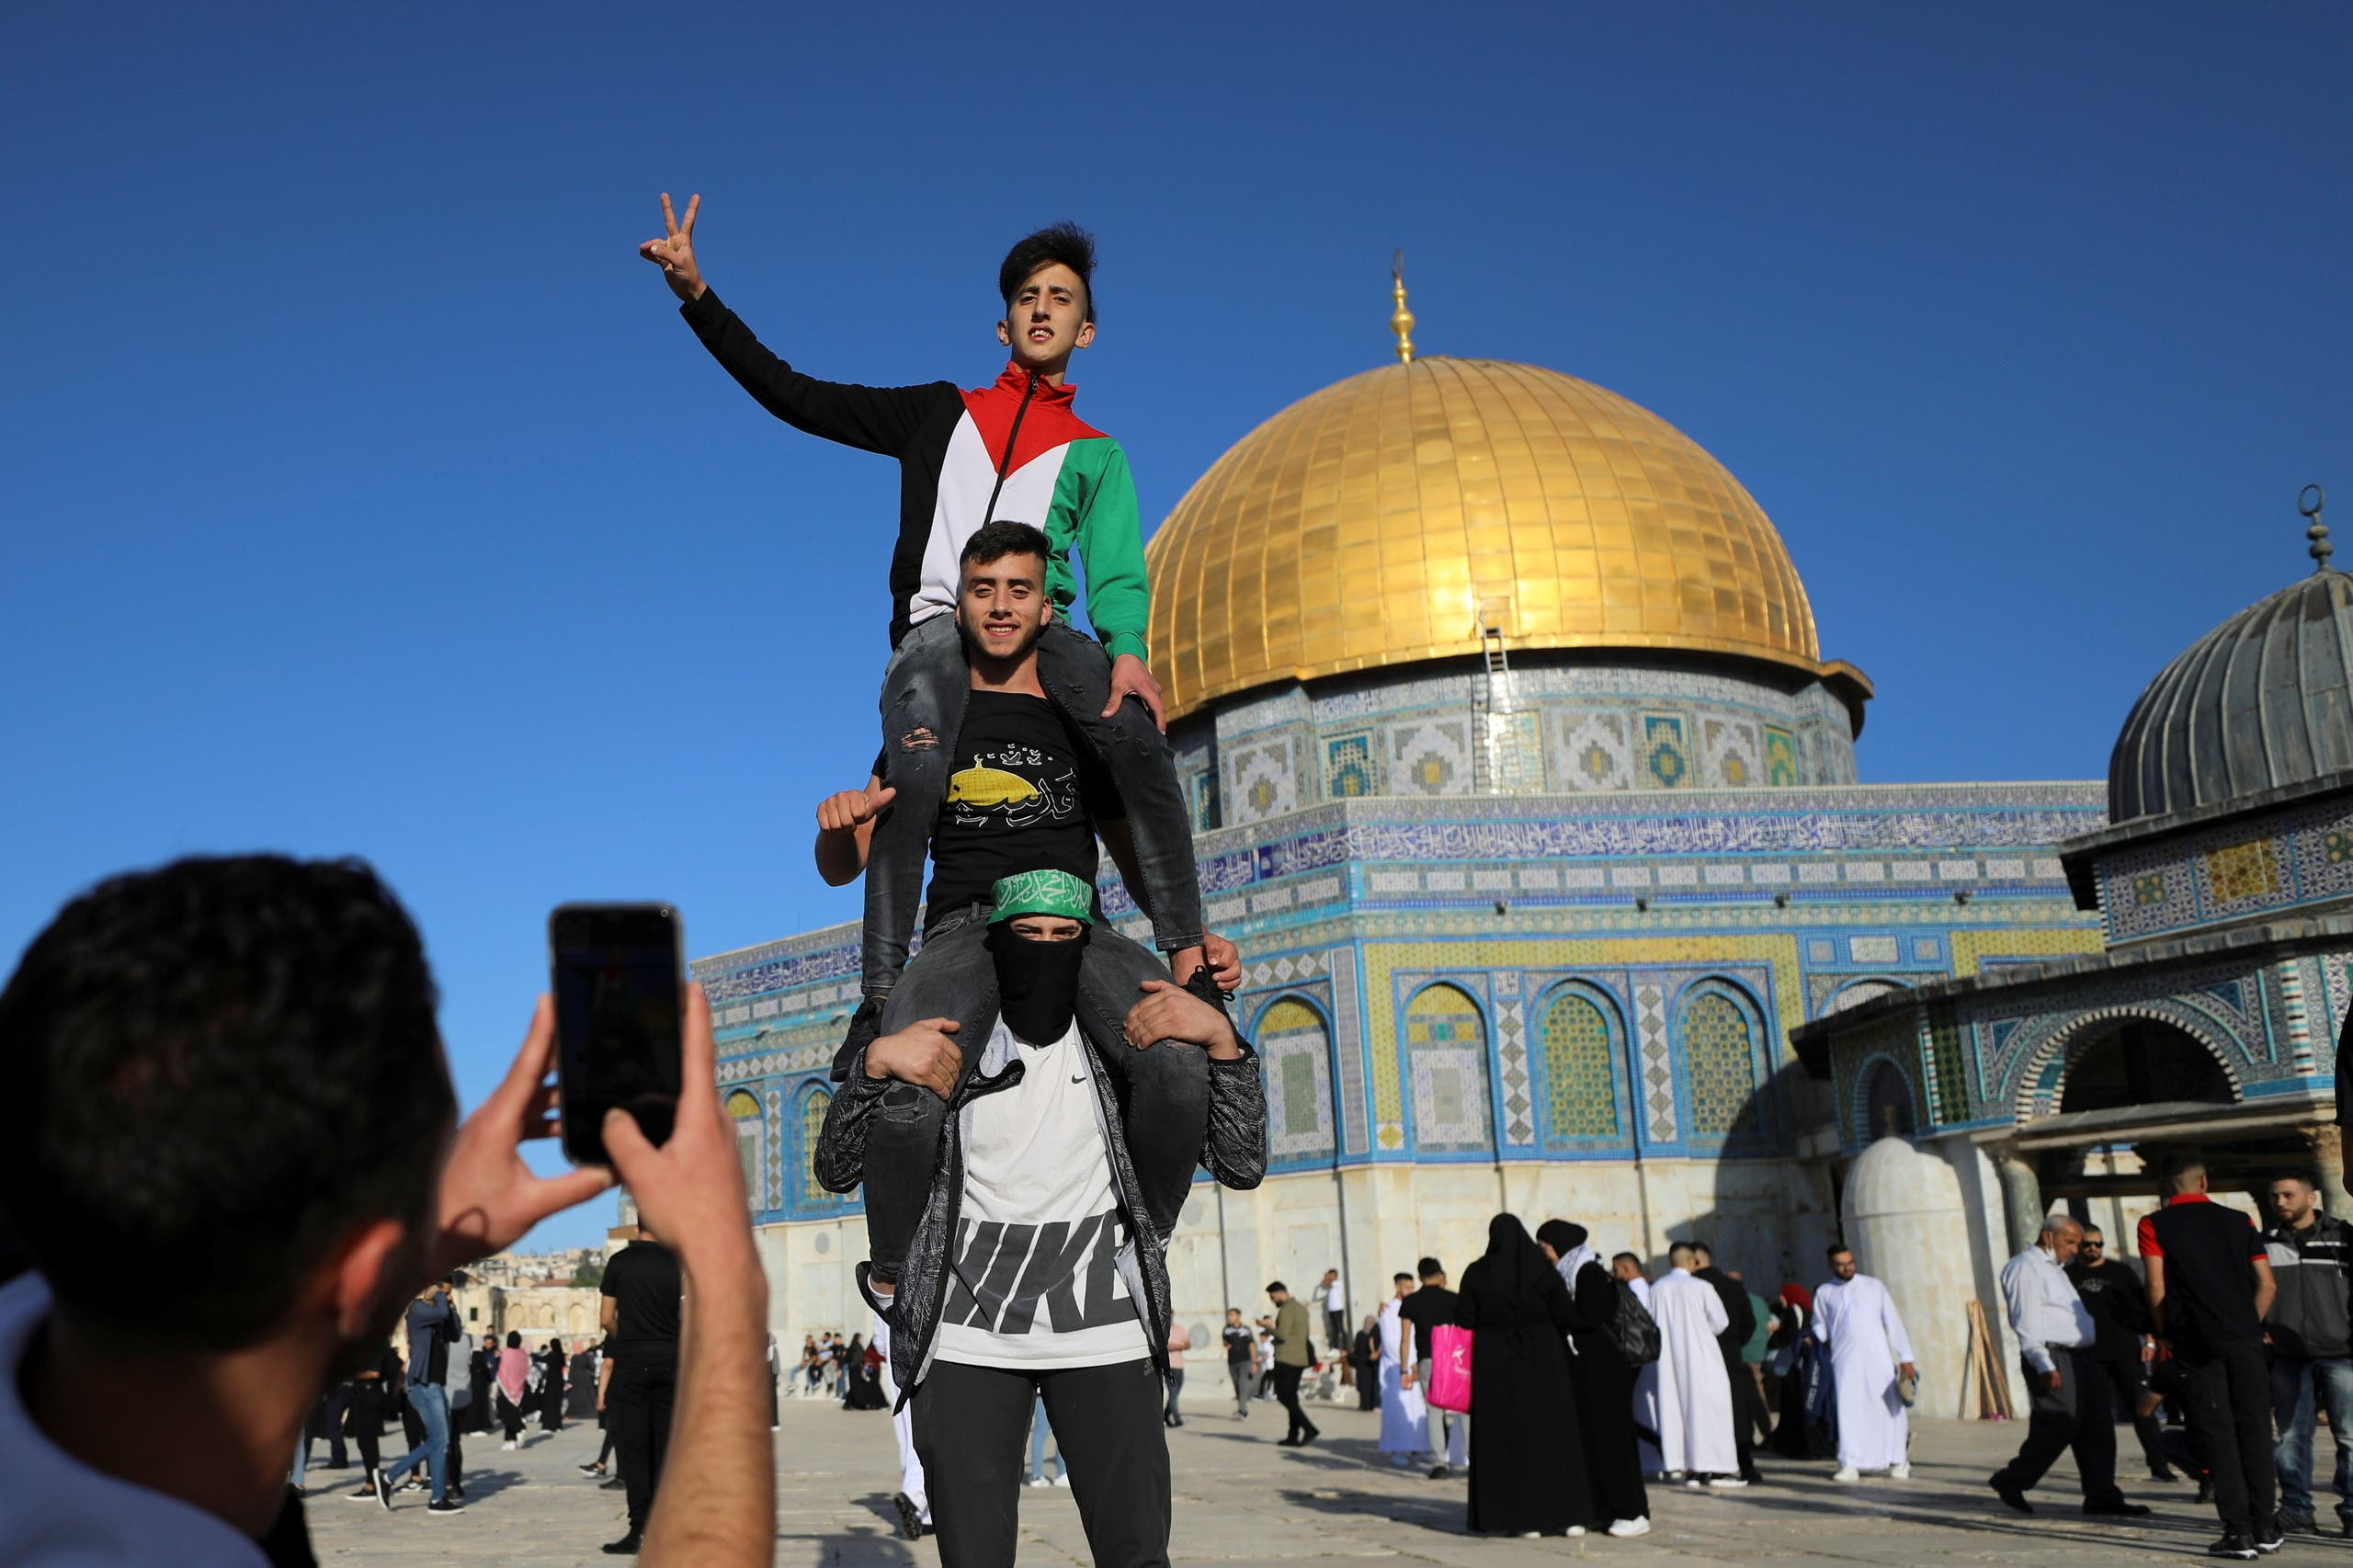 Palestinian youths pose as a friend photographs them, while the Dome of the Rock is seen in the background, during Eid al-Fitr prayers, which mark the end of the holy fasting month of Ramadan, at the compound that houses al-Aqsa mosque on May 13, 2021. (Reuters)